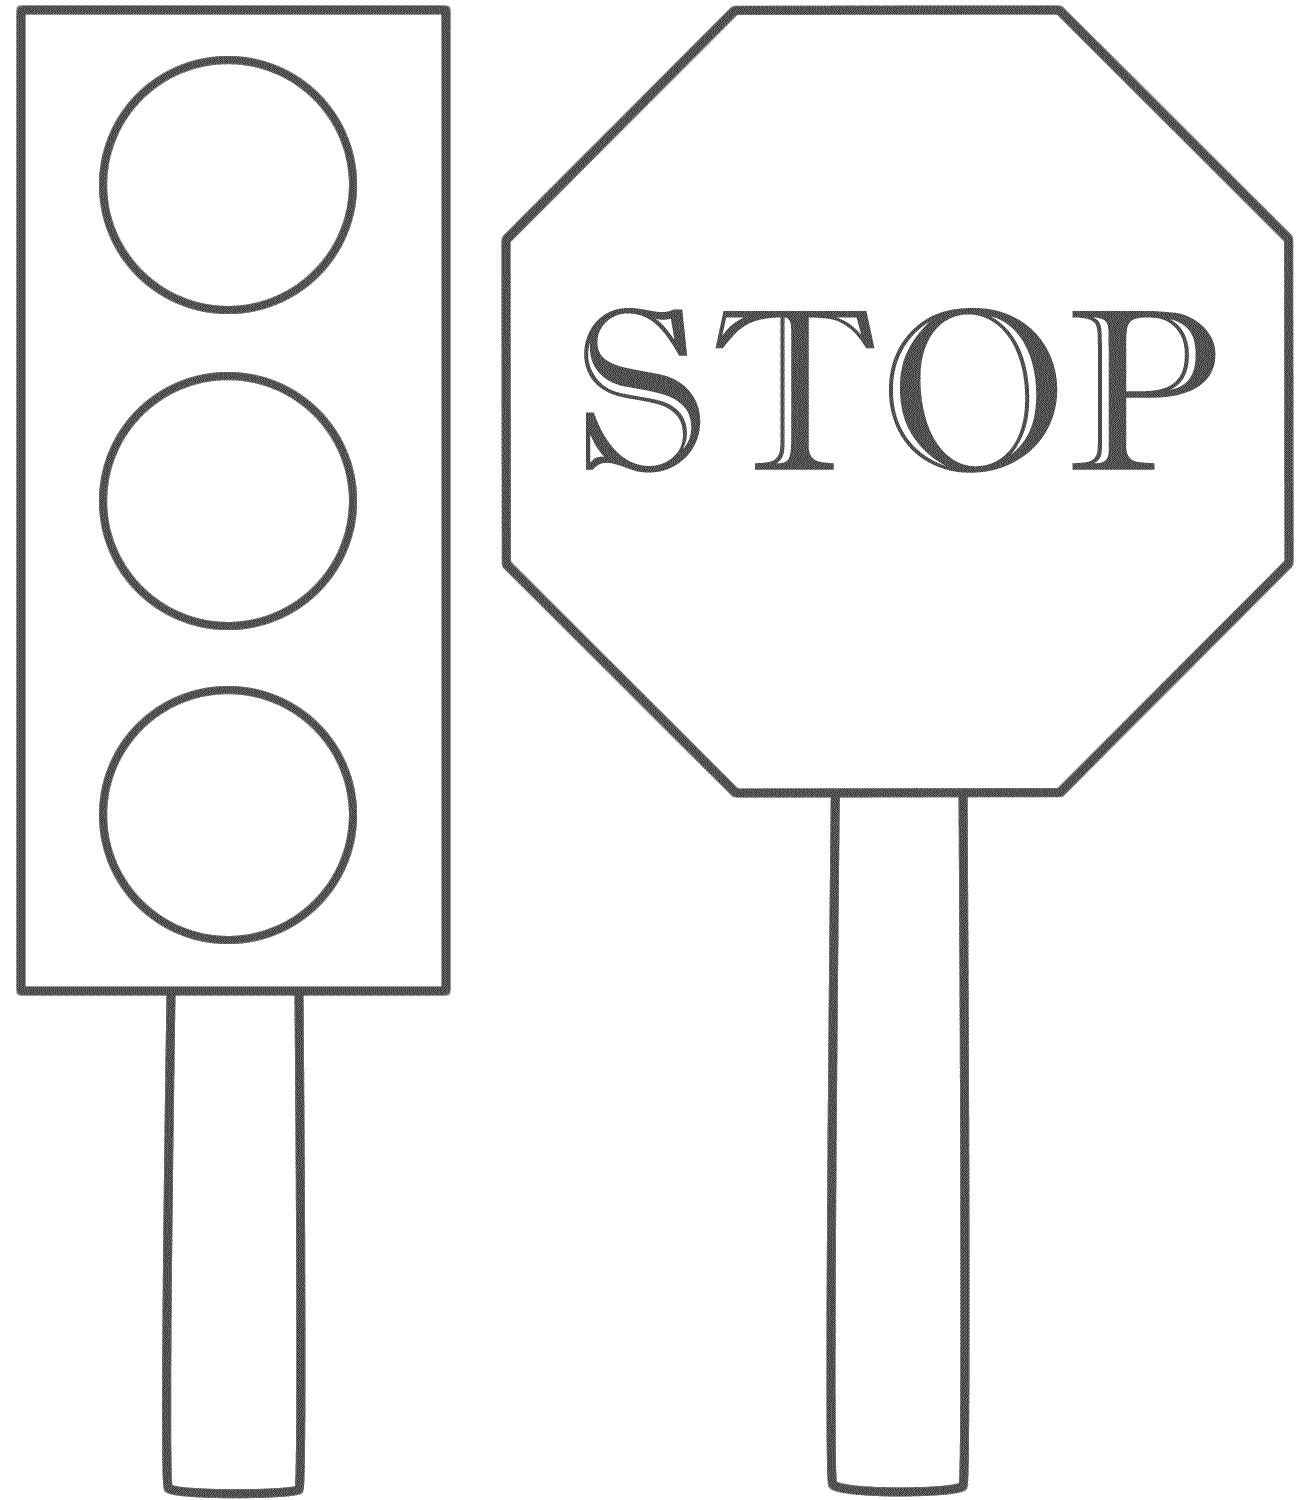 Traffic Light Worksheet For Preschoolers